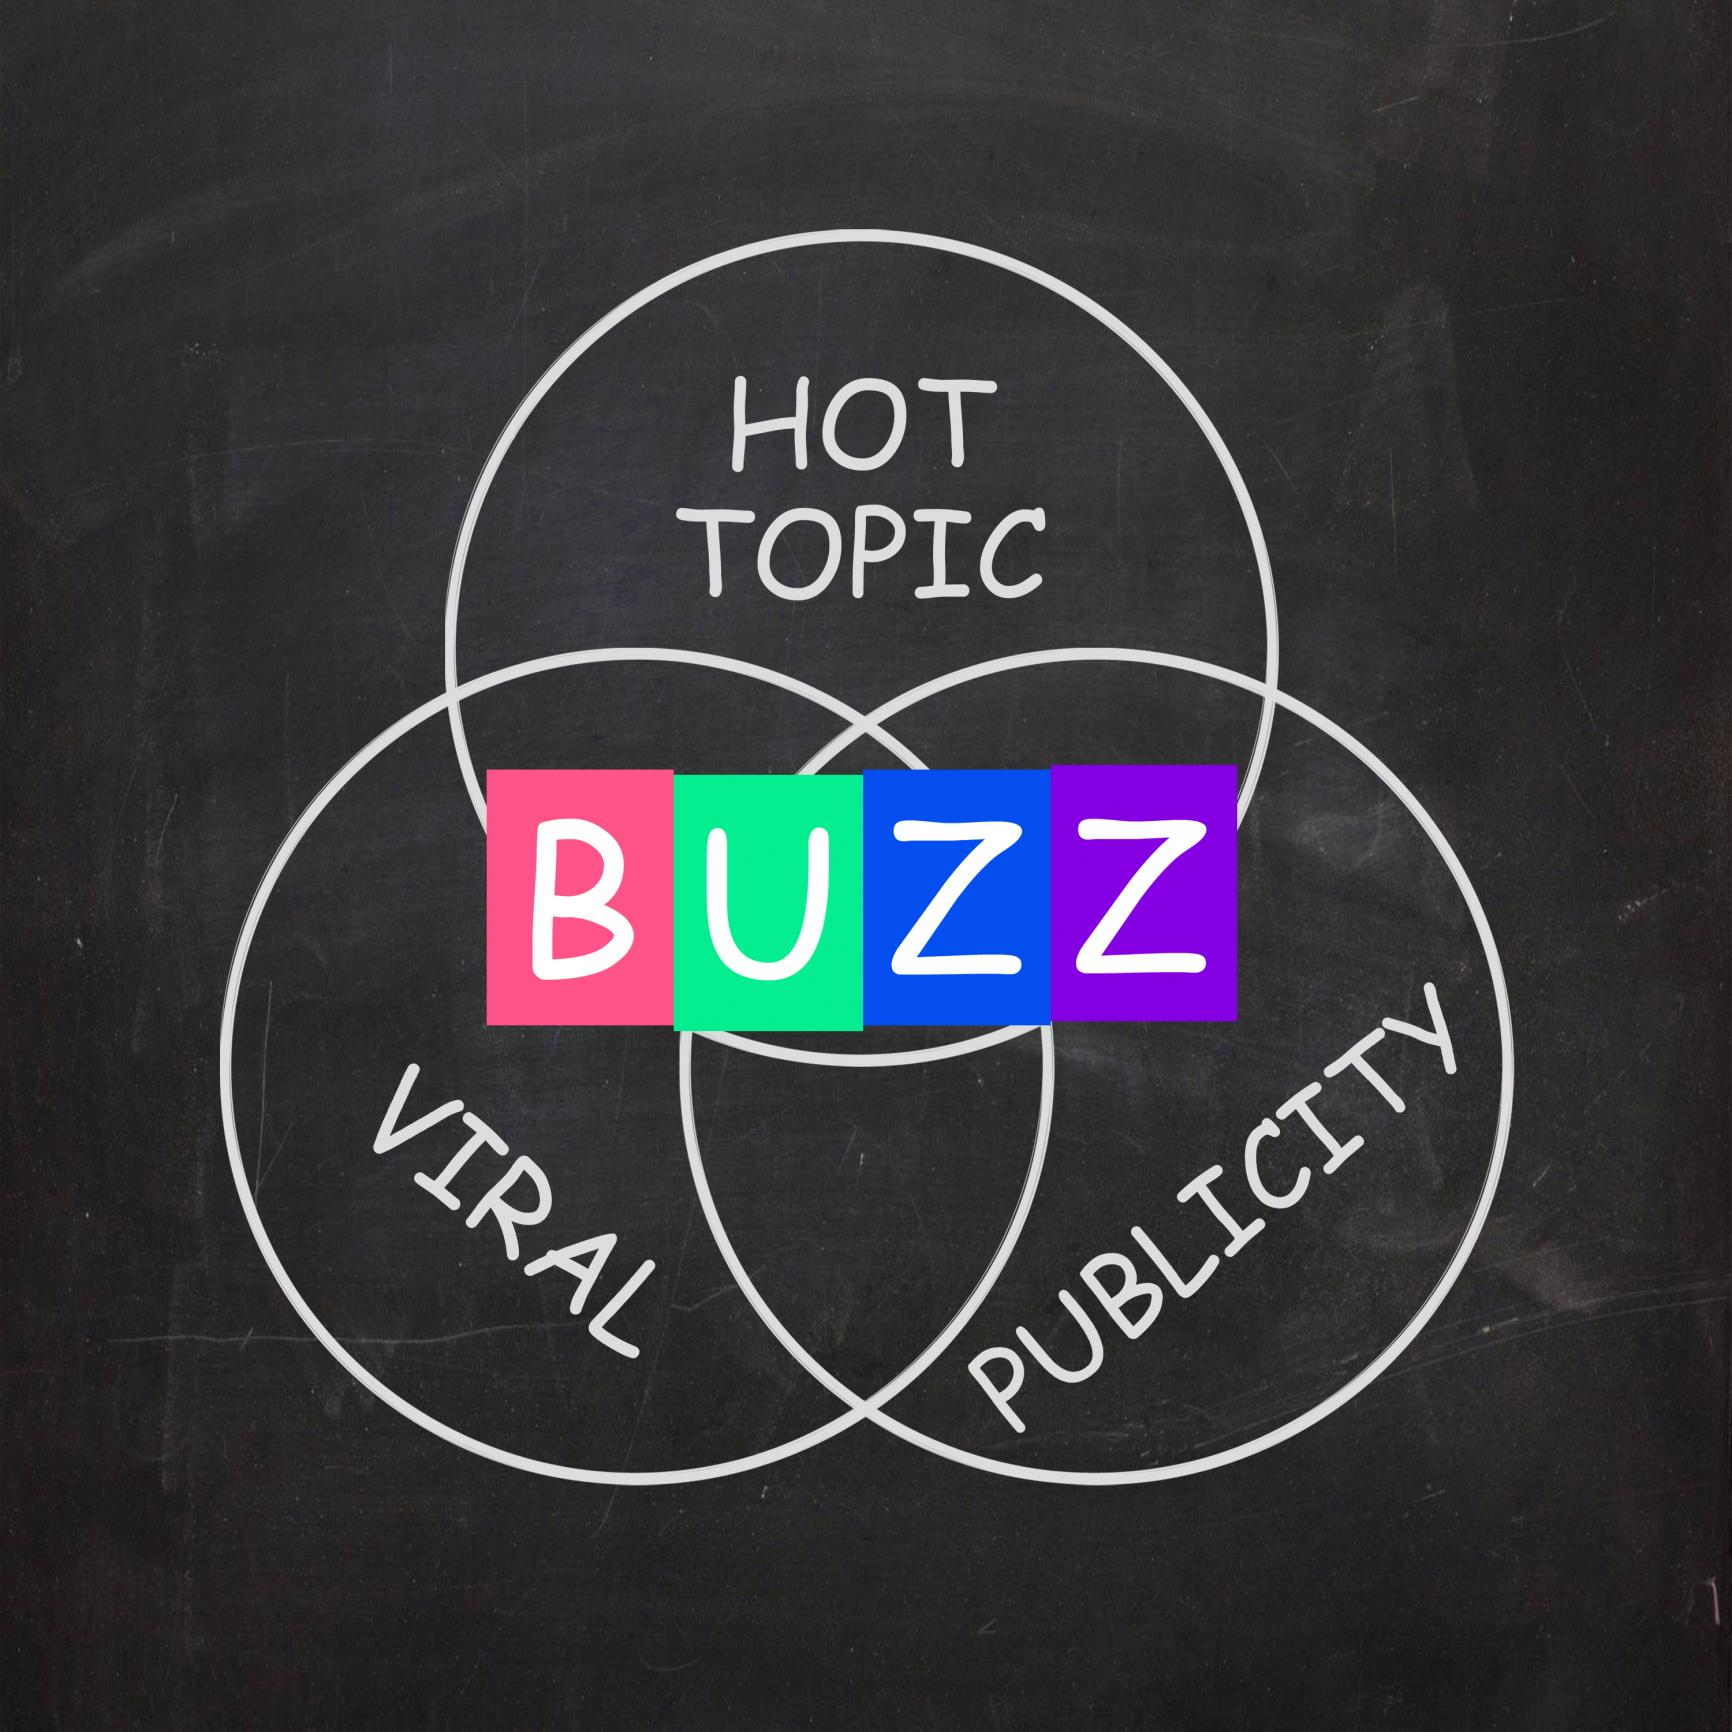 buzz-words-show-publicity-and-viral-hot-topic